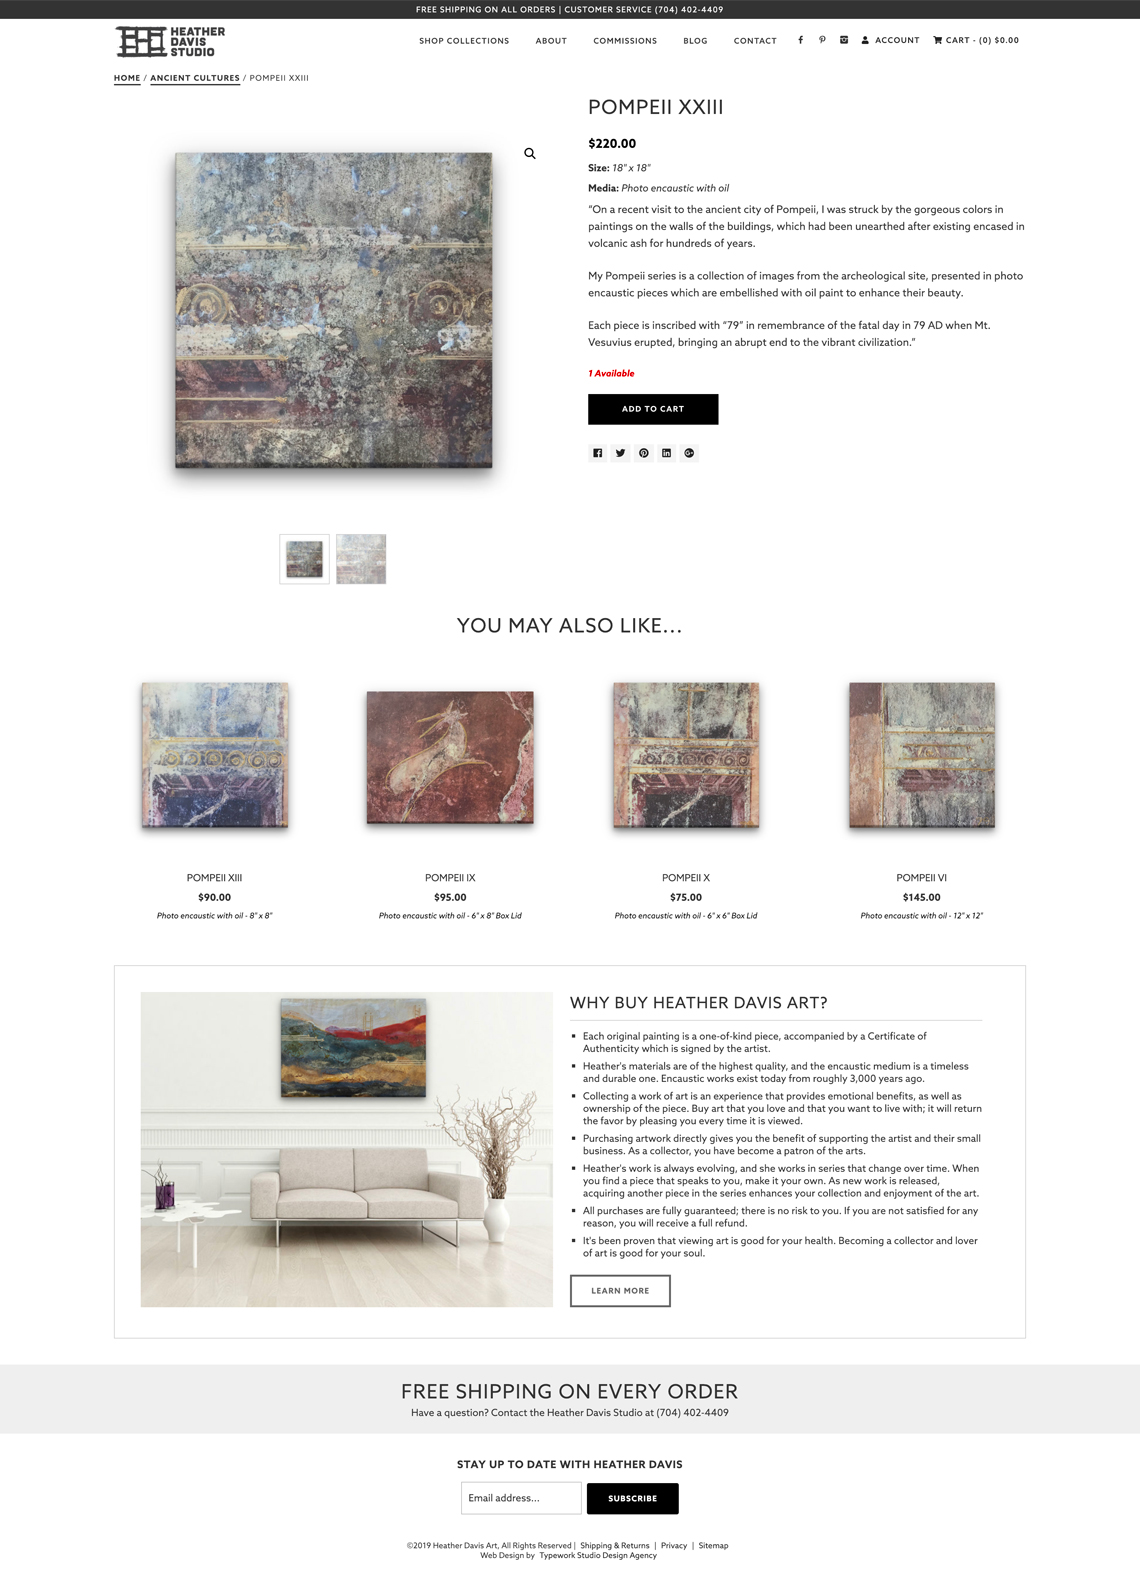 Heather Davis Fine Art CMS + Ecommerce Web Design - Product Page